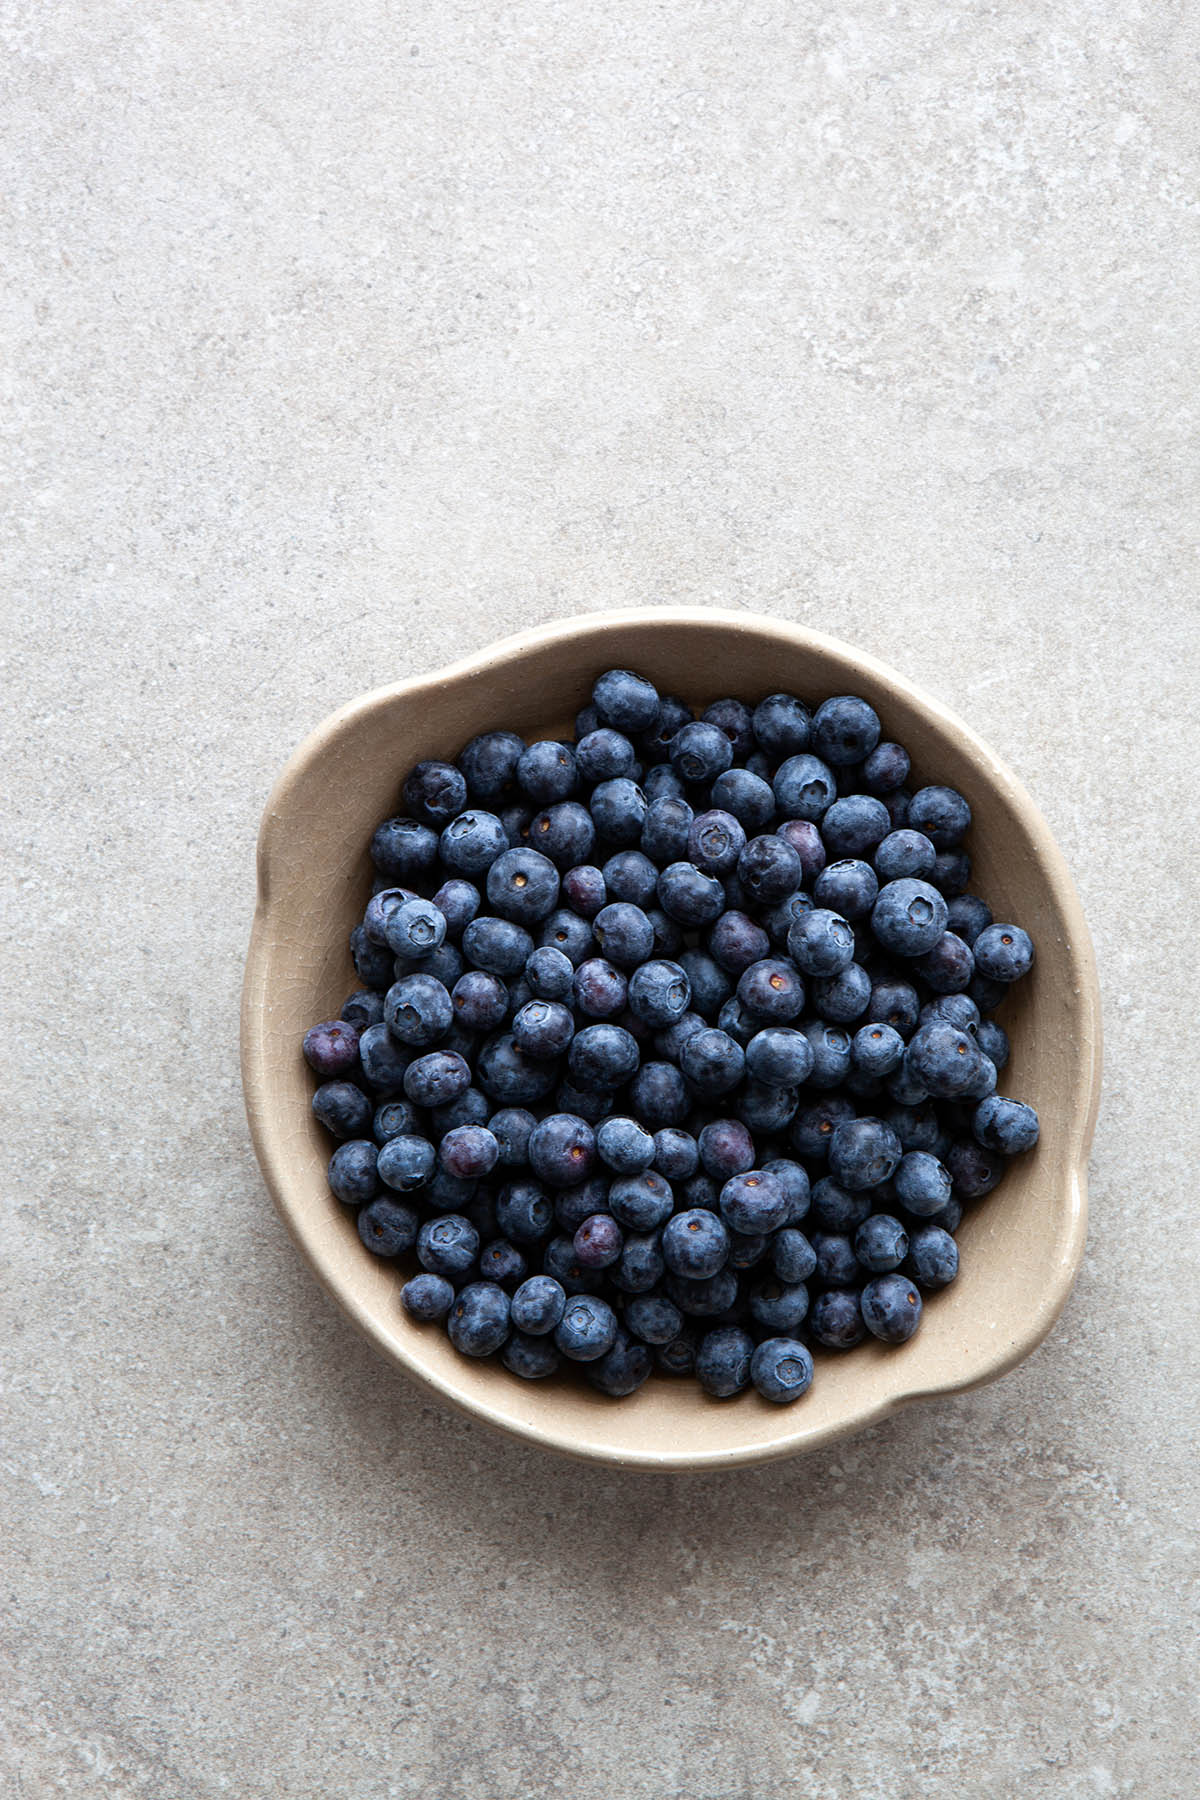 A dish of blueberries.